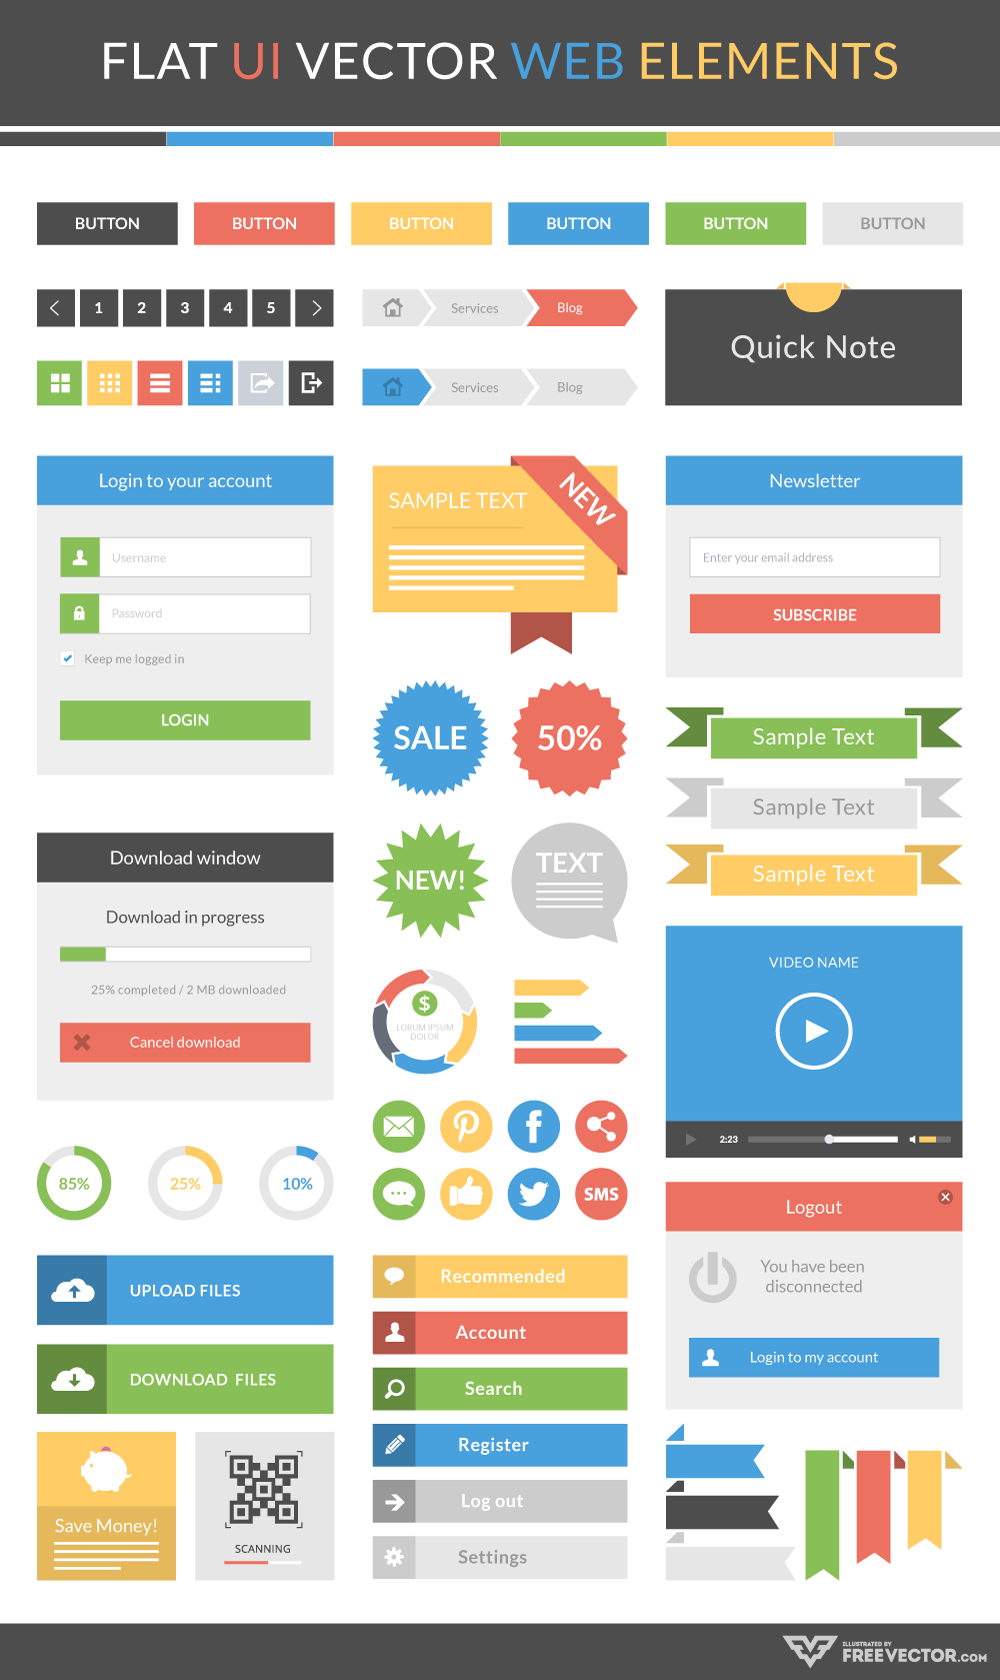 Flat UI Vector Web Elements